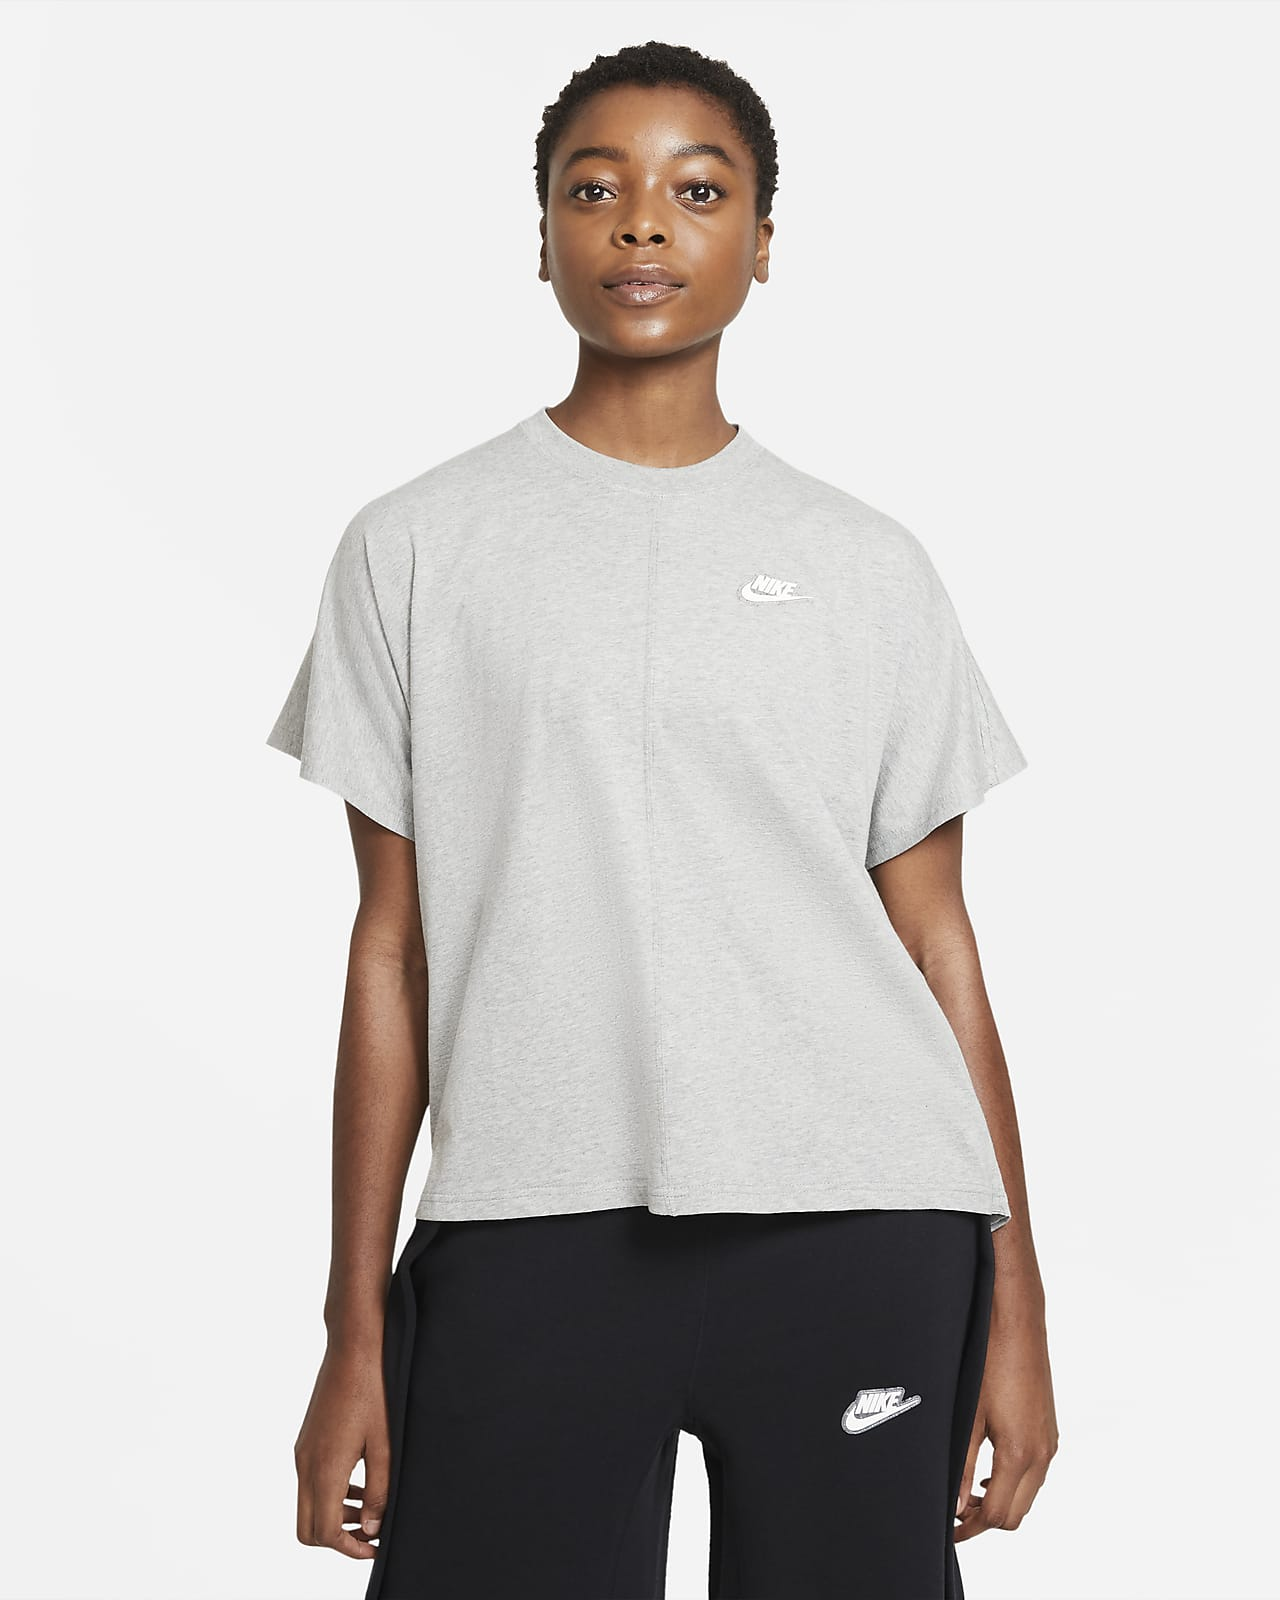 Nike Sportswear Women's Short-Sleeve Top